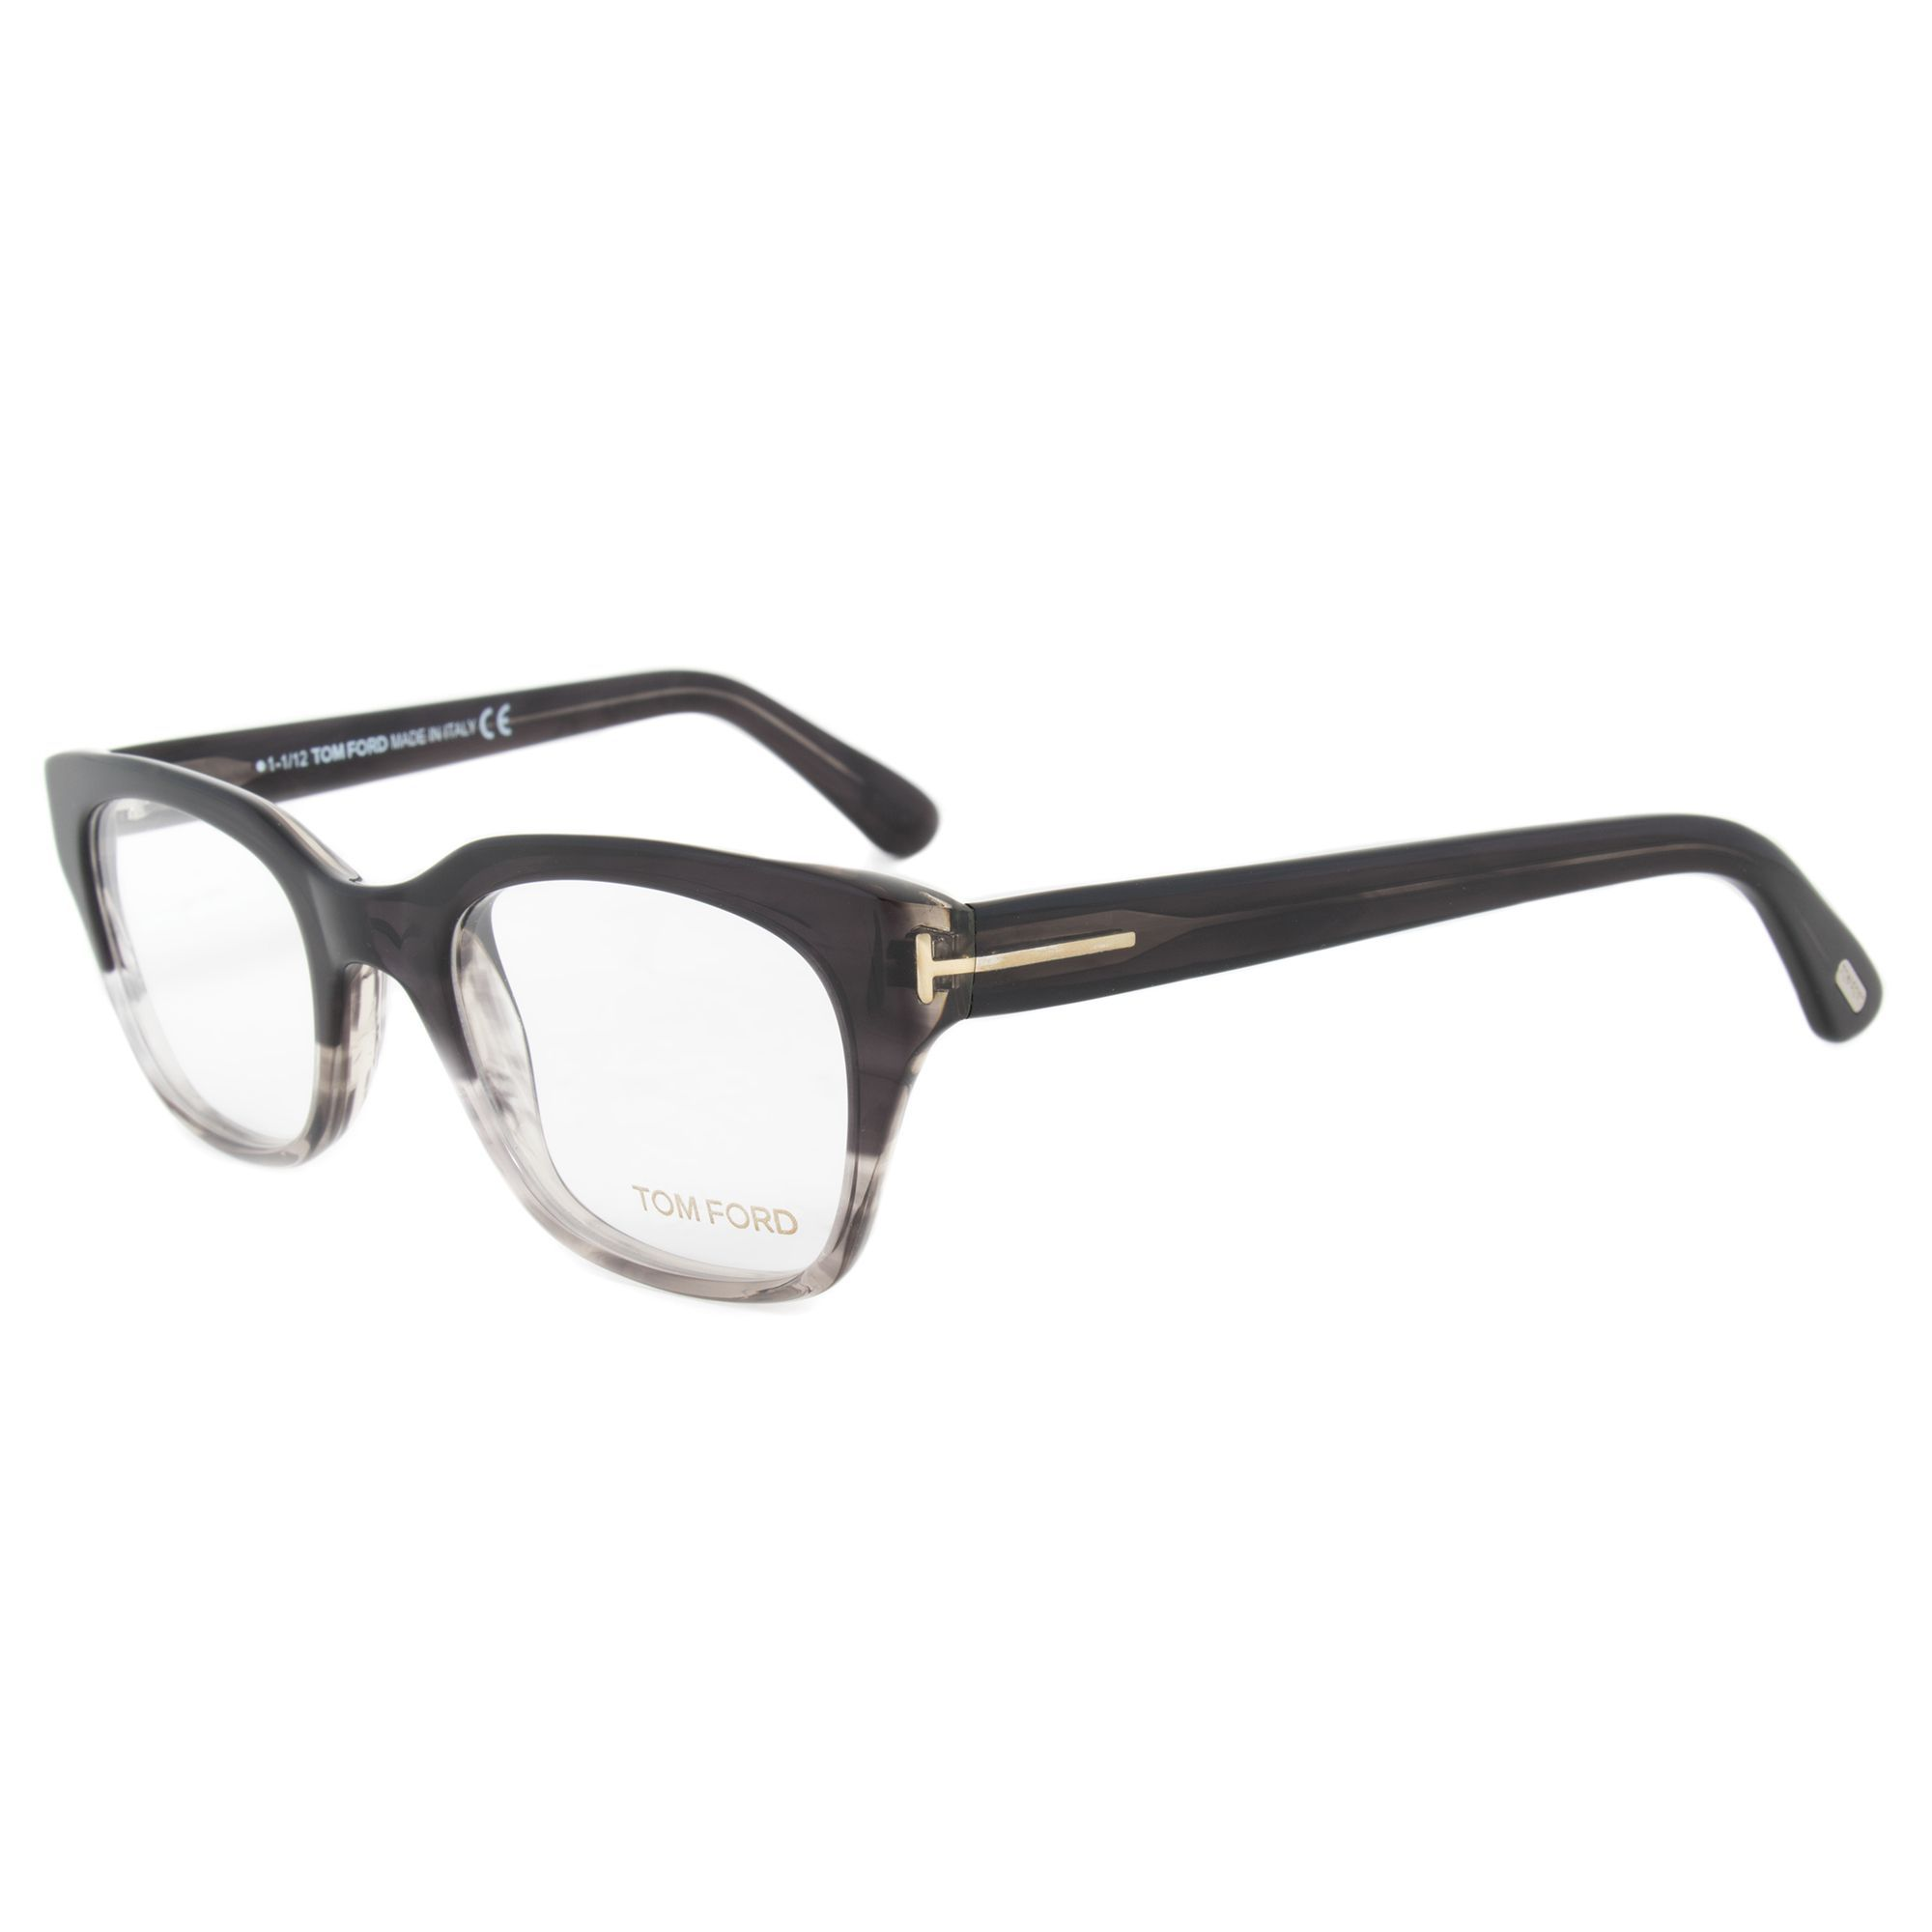 fc7409a0e2 Tom Ford TF5240 020 Striped Horn Grey Frame 49mm Eyeglasses Frame ...